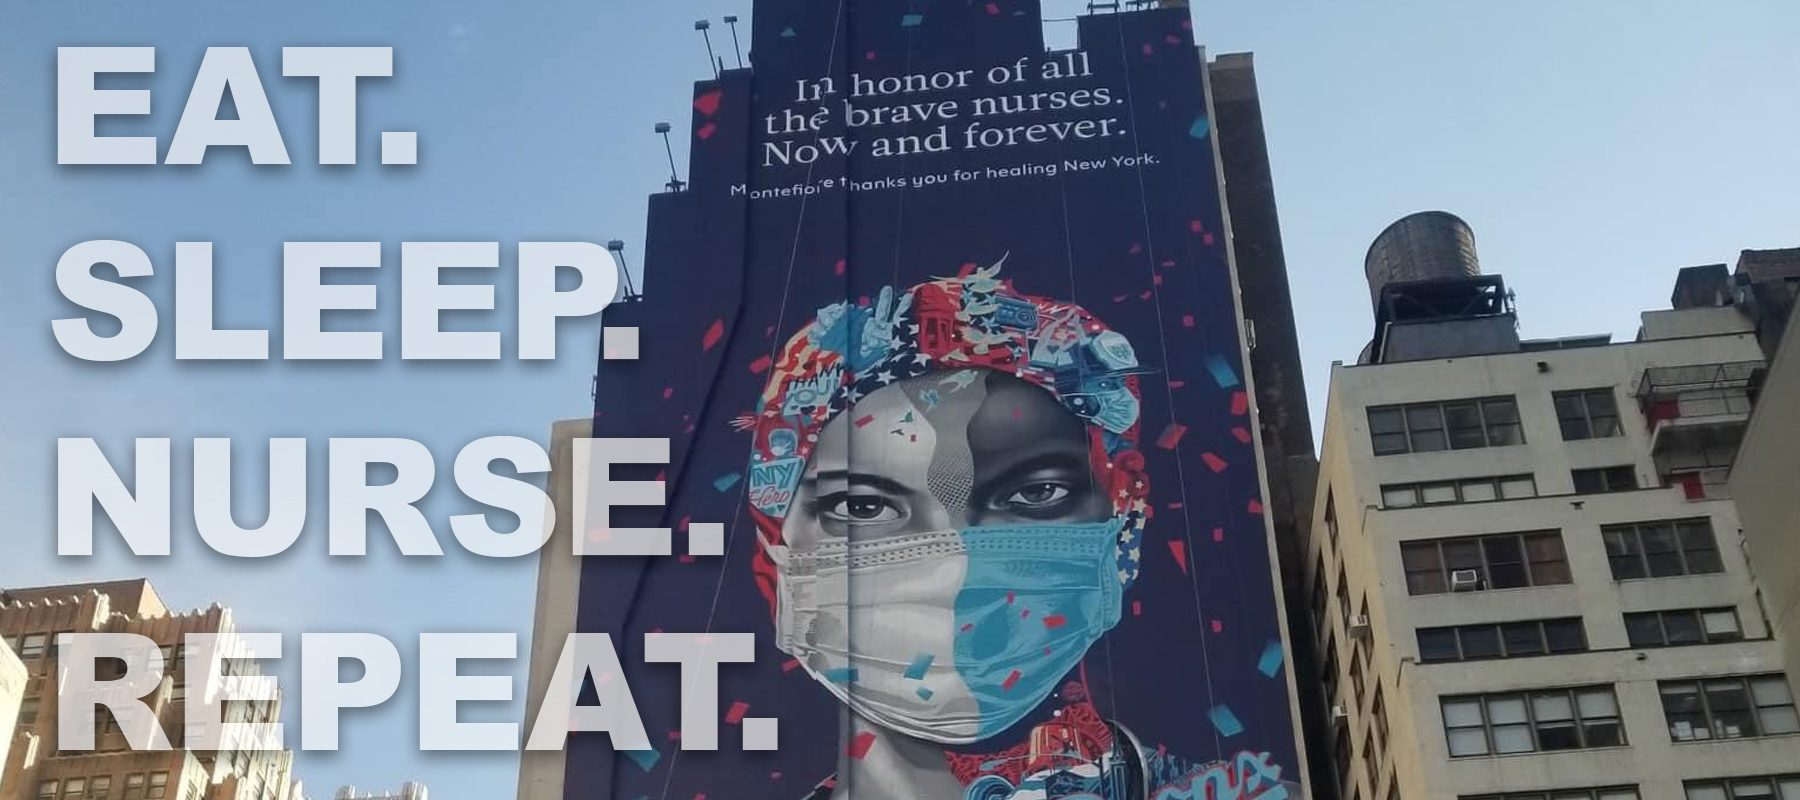 Eat. Sleep. Nurse. Repeat. A mural of a nurse in New York City